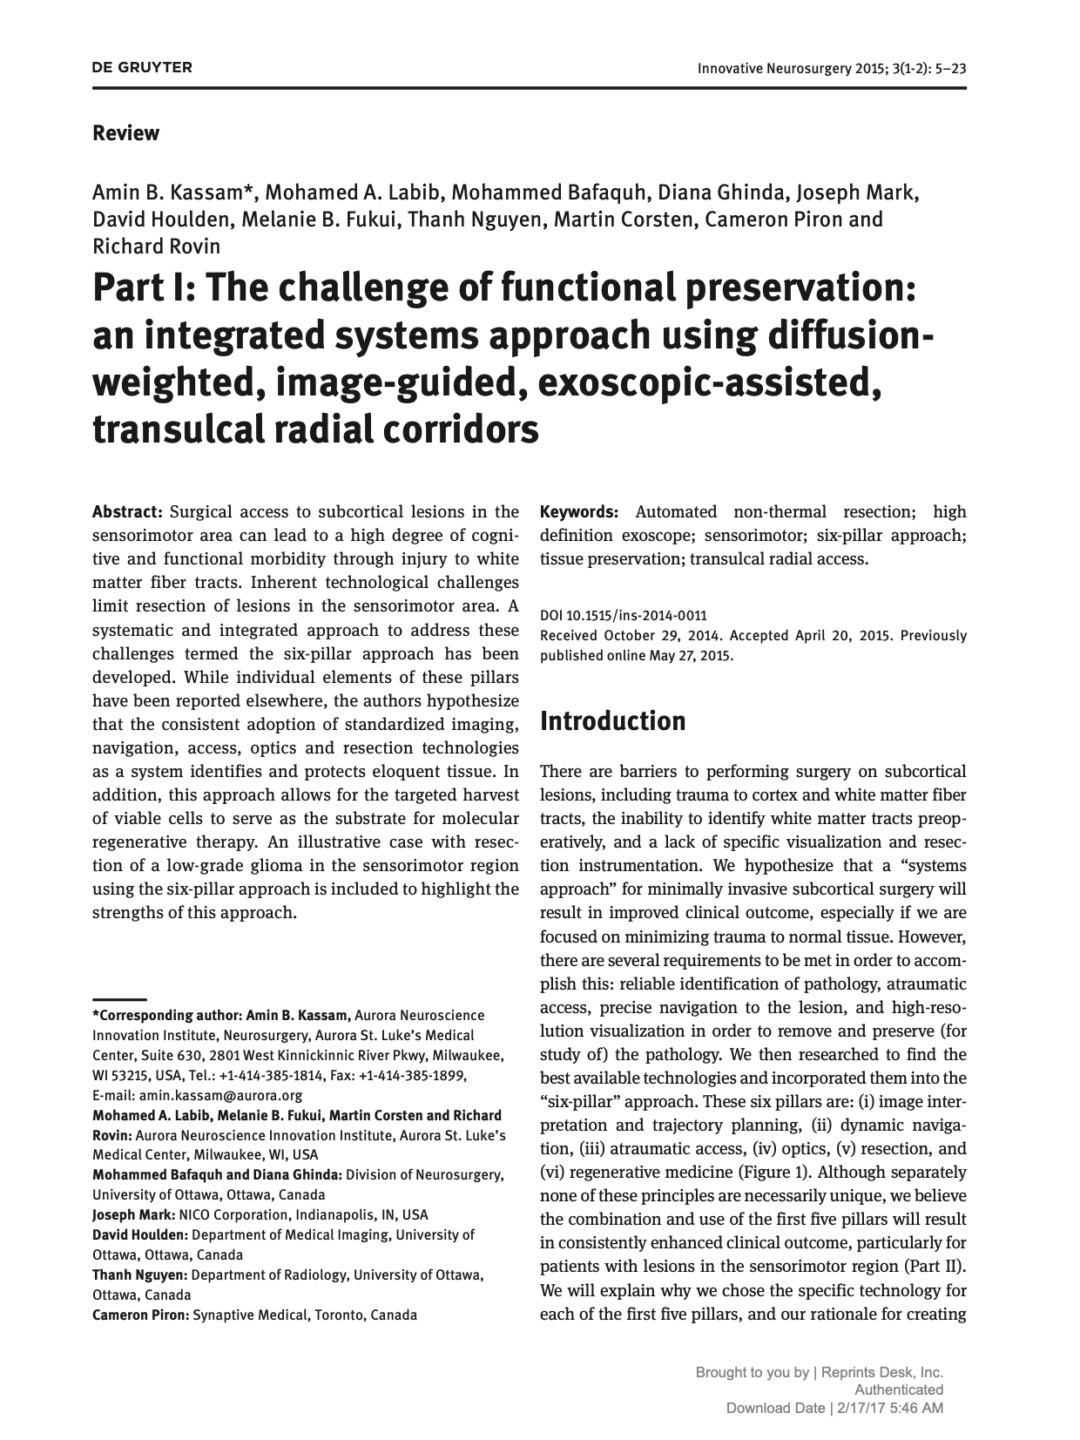 Part I: The challenge of functional preservation: an integrated systems approach using diffusion- weighted, image-guided, exoscopic-assisted, transulcal radial corridors